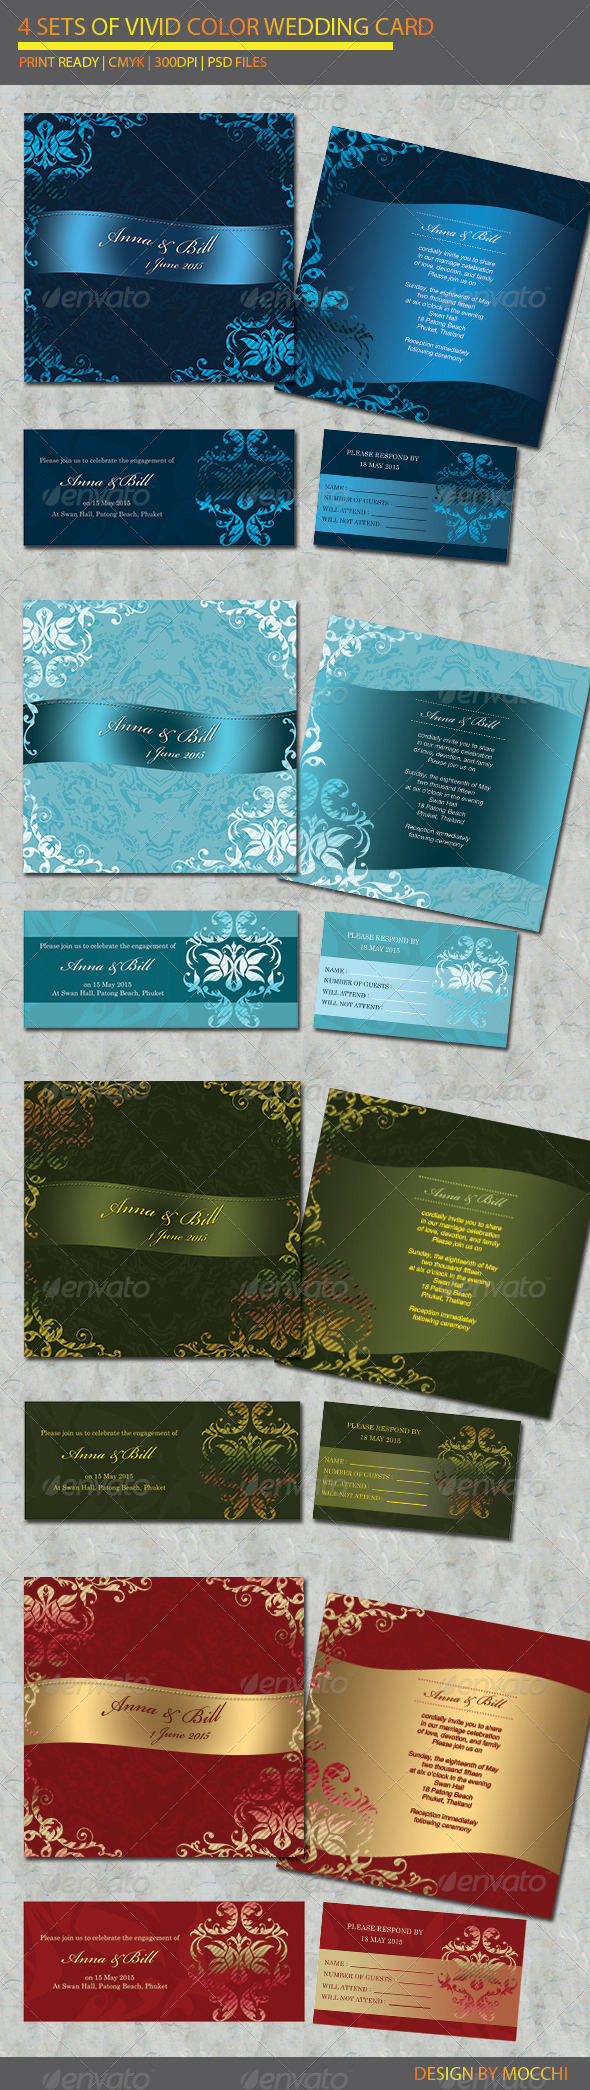 4 items Wedding Card - Weddings Cards & Invites